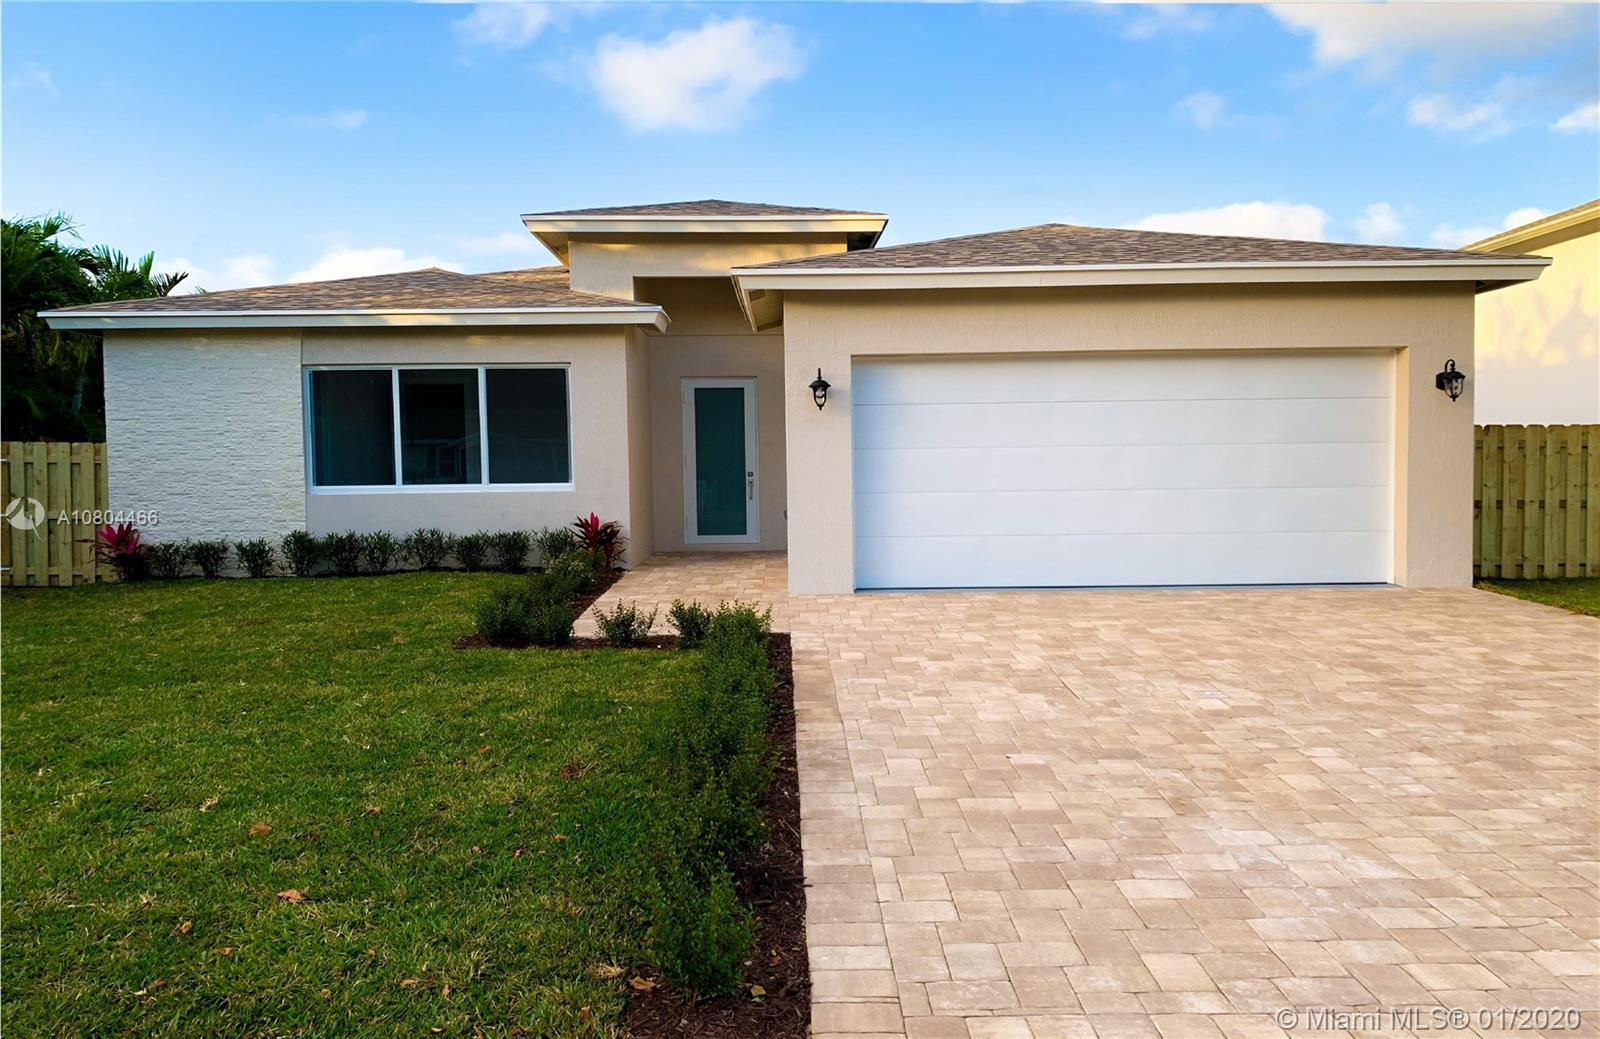 BRAND NEW CONSTRUCTION! Beautiful design with high ceilings. This Large 4 beds 3 ½ baths home is ide